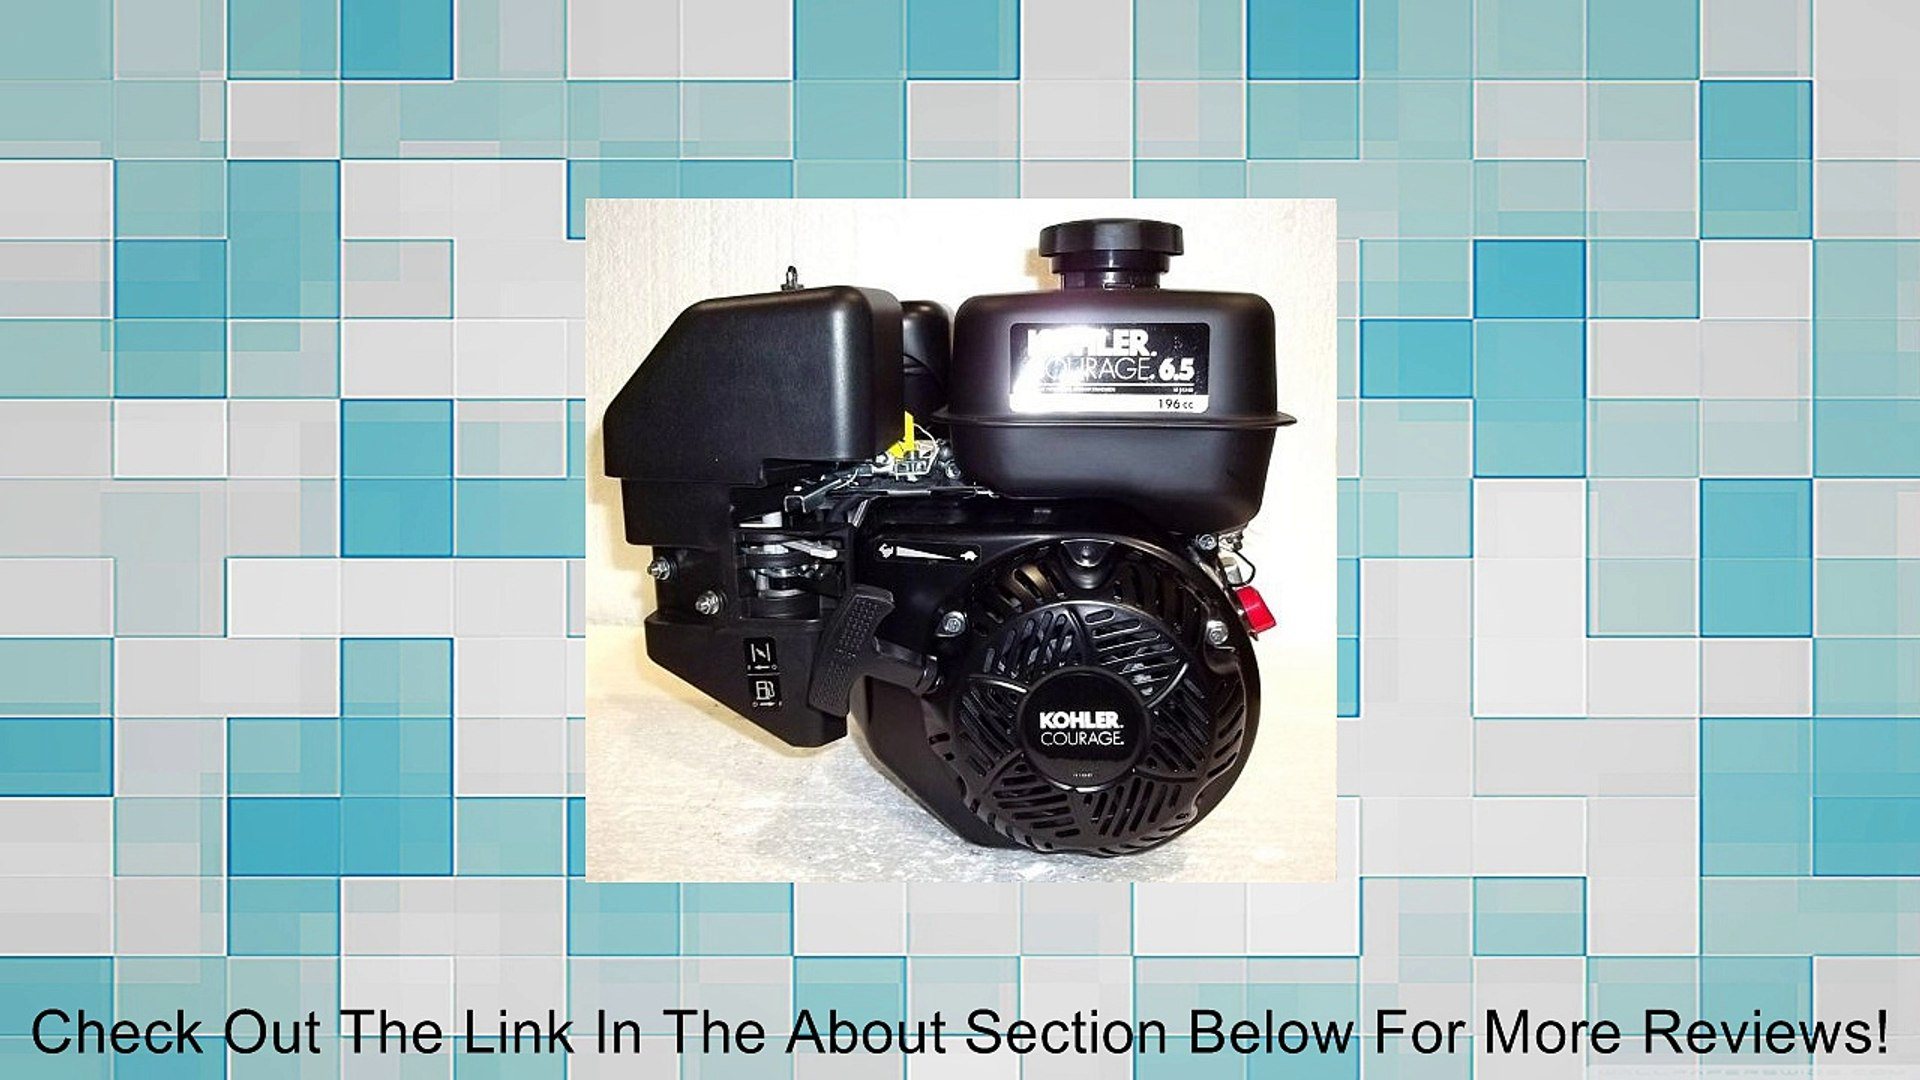 Kohler Courage Engine - 196cc, 3/4in. x 2 7/16in. Shaft, Model#  PA-SH265-3011 Review - Video Dailymotion